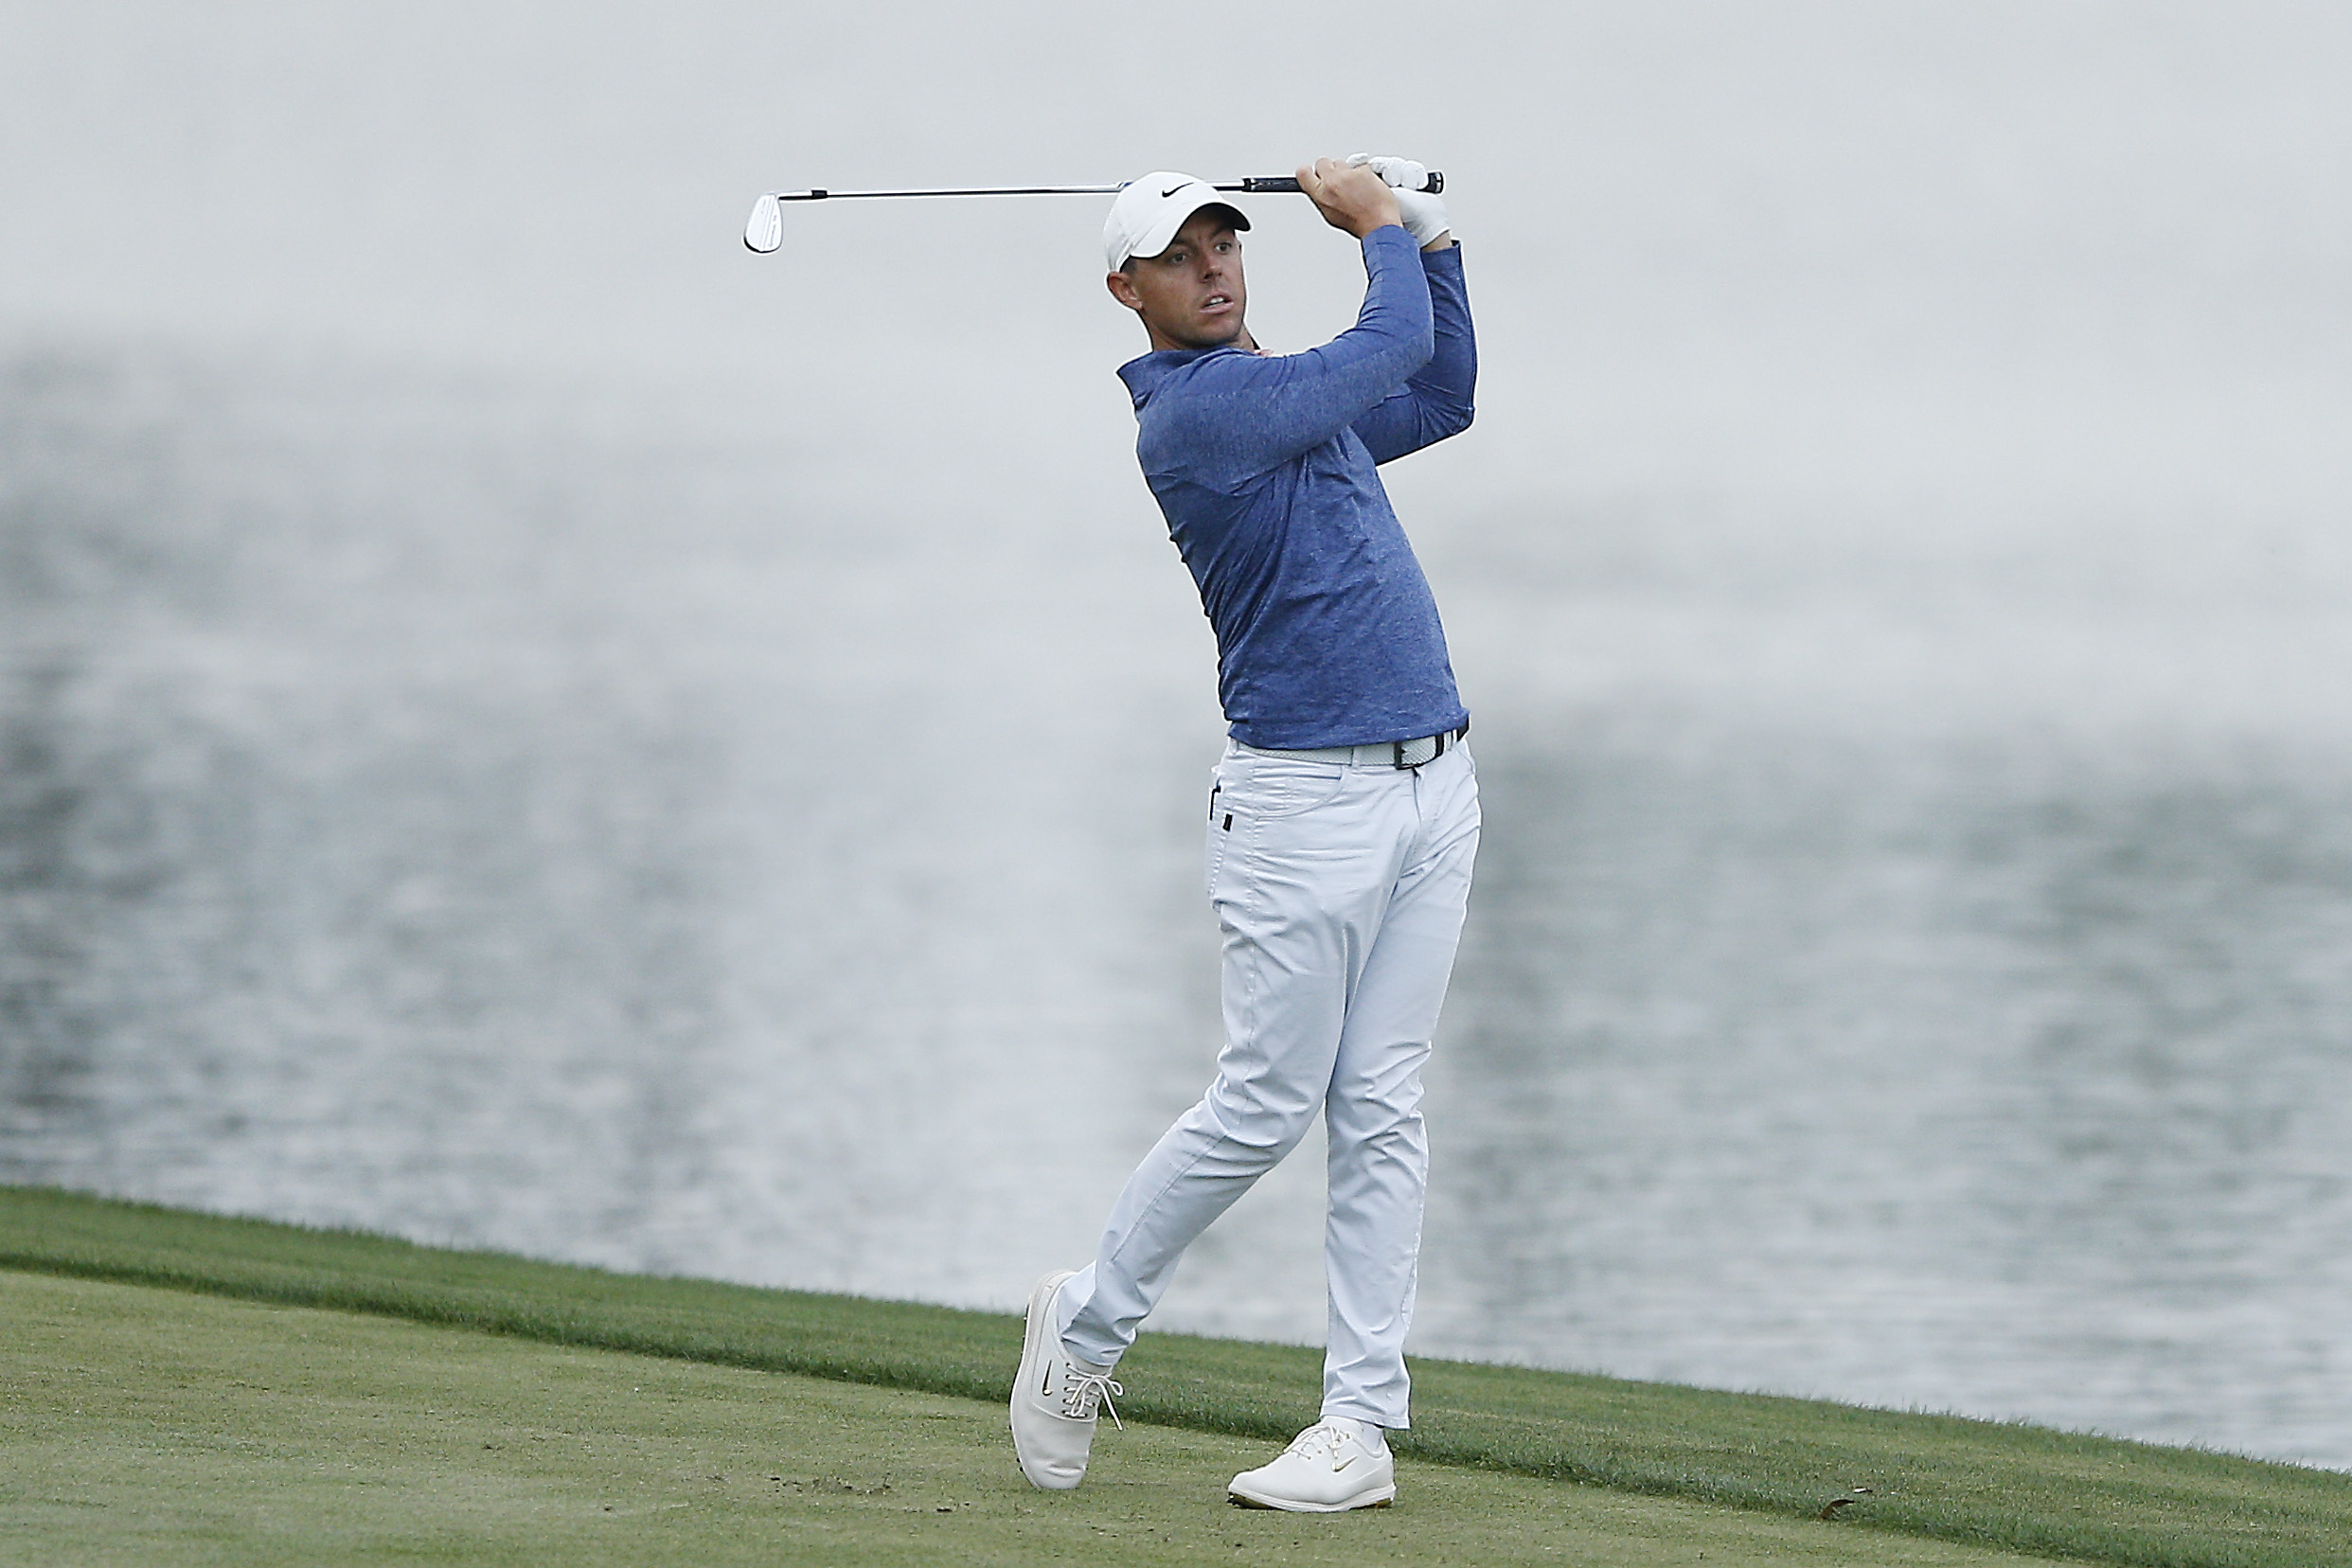 Players Championship 2019: Rory McIlroy one off the lead, but the better news is he's not in final pairing | Golf News and Tour Information | Golf Digest